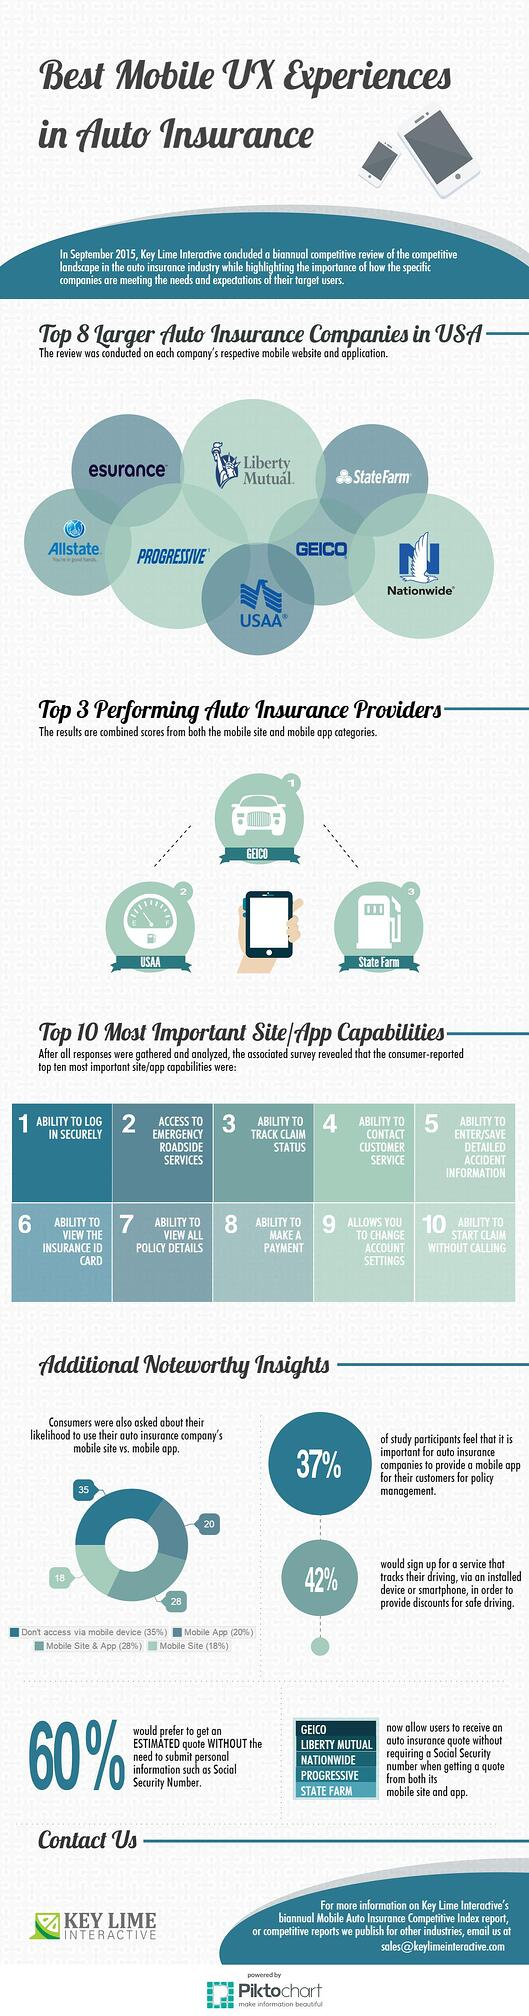 best-mobile-ux-experiences-in-auto-insurance_10.jpeg